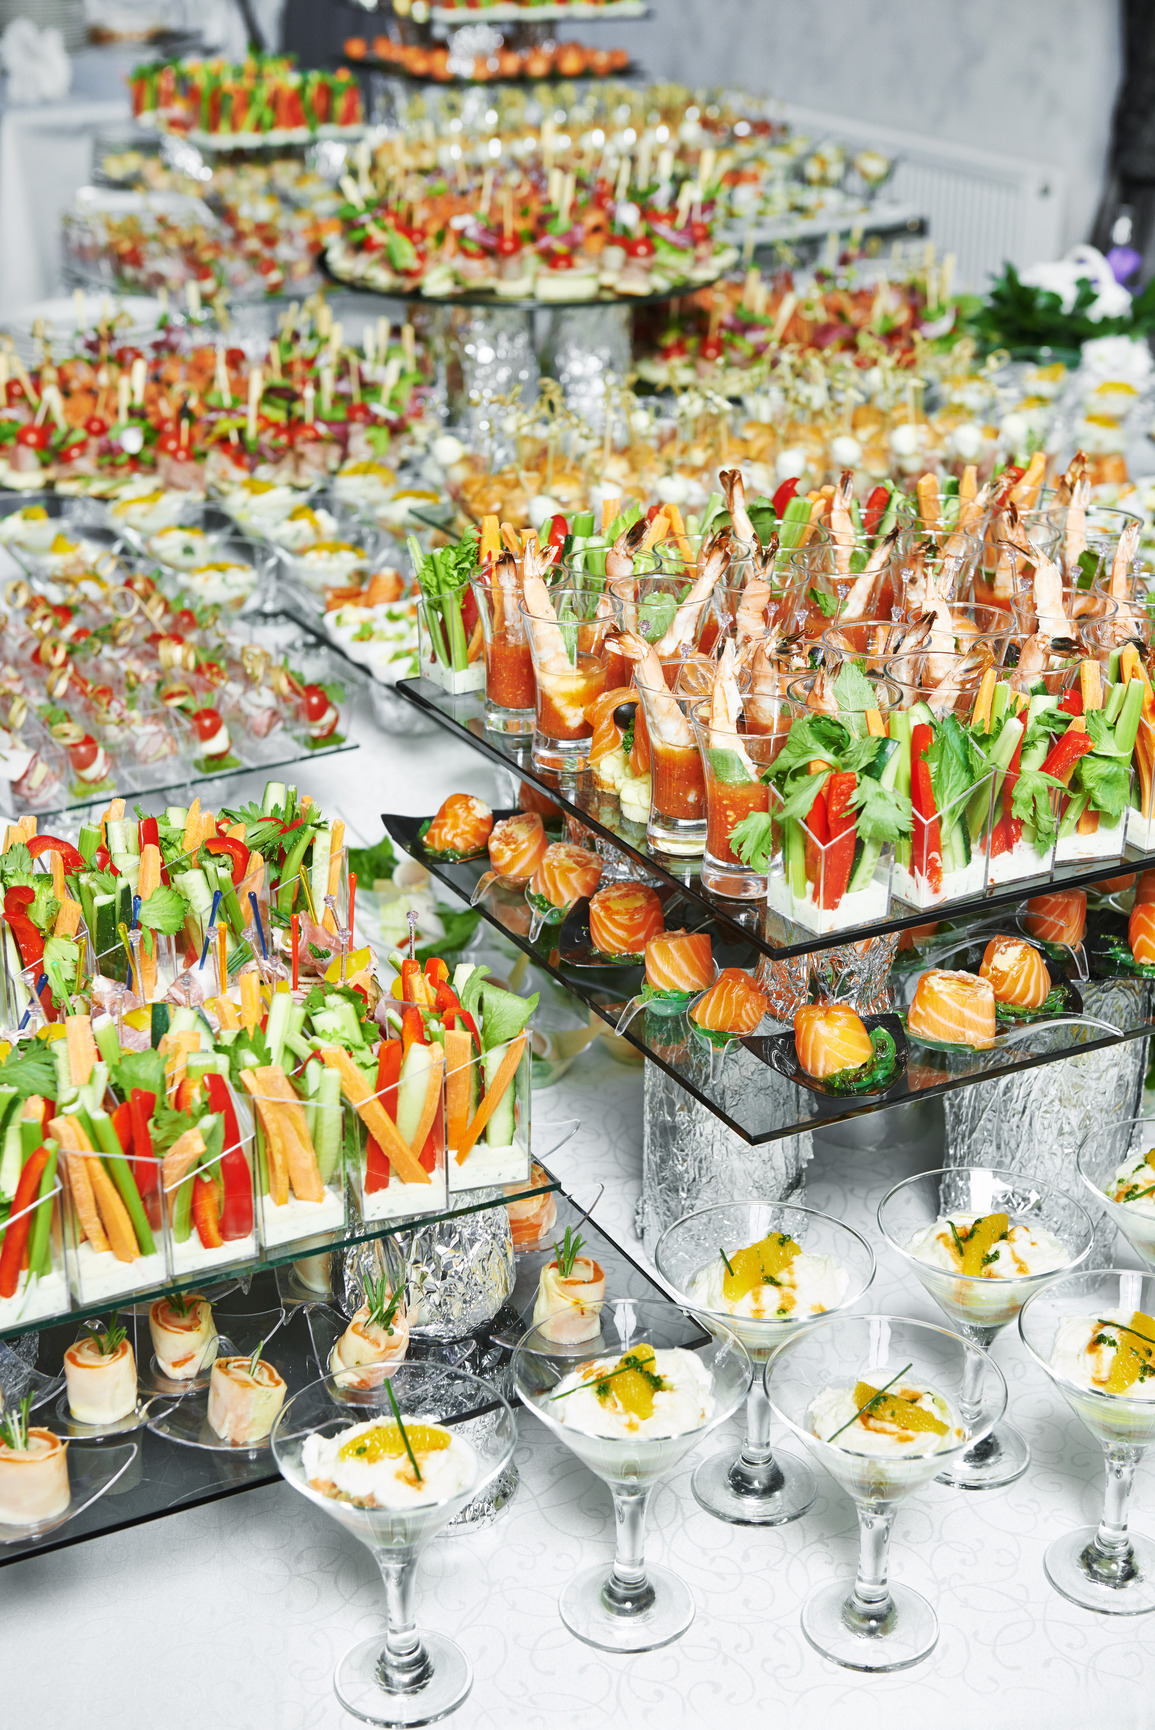 Corporate catering, outside caterers, full table spread